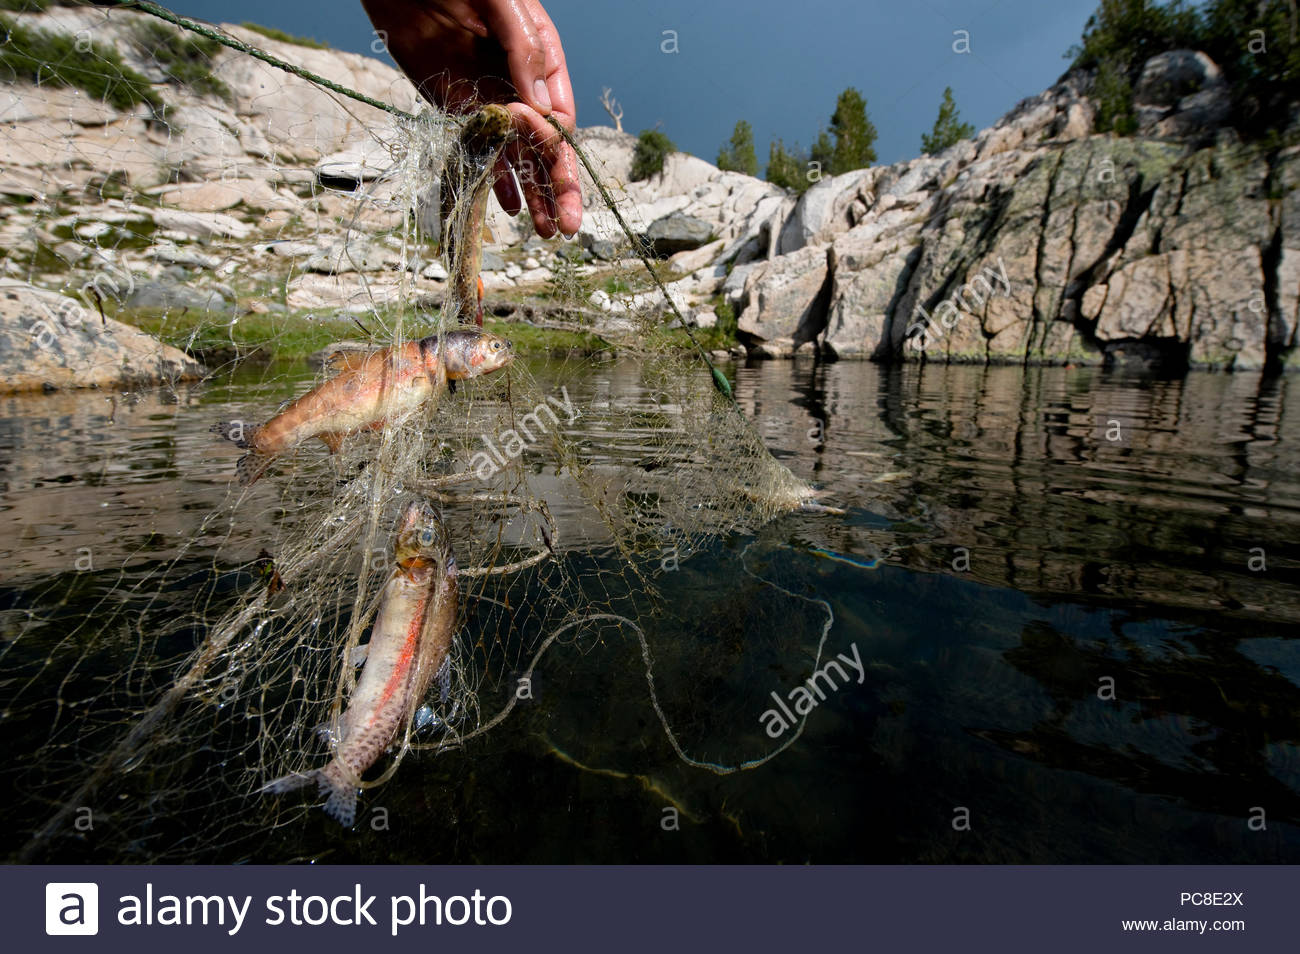 Un biologiste utilise un filet pour pêcher la truite au Kings Canyon National Park. Photo Stock